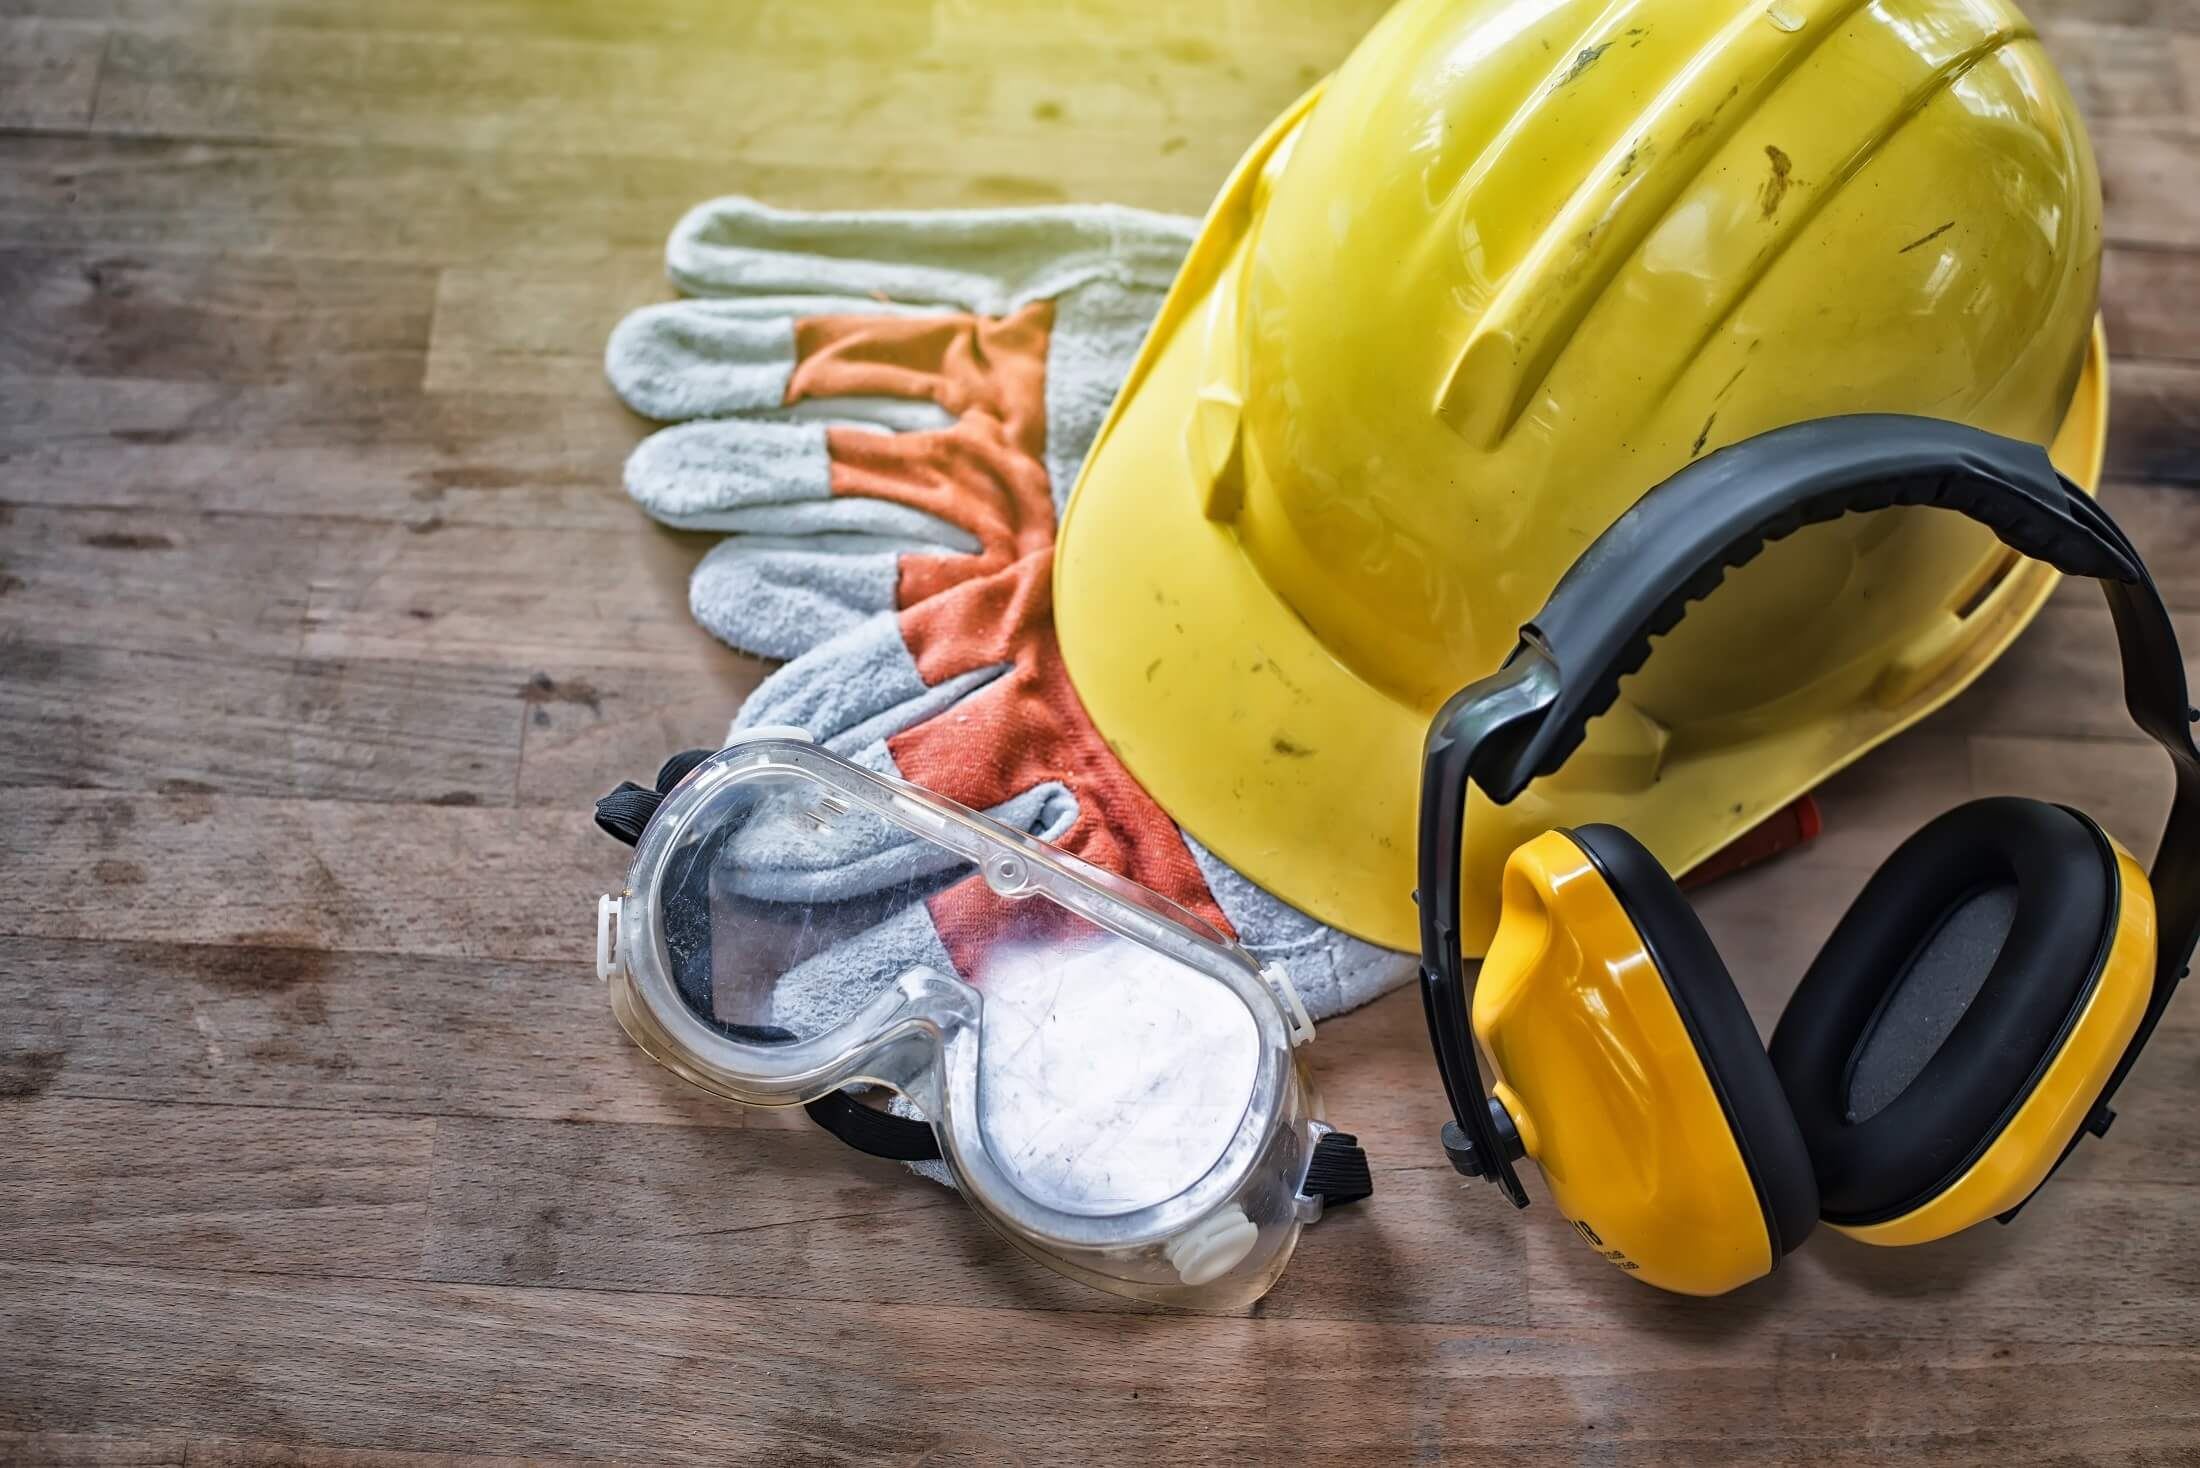 Personal Protective Equipment (PPE) for handling gas cylinders